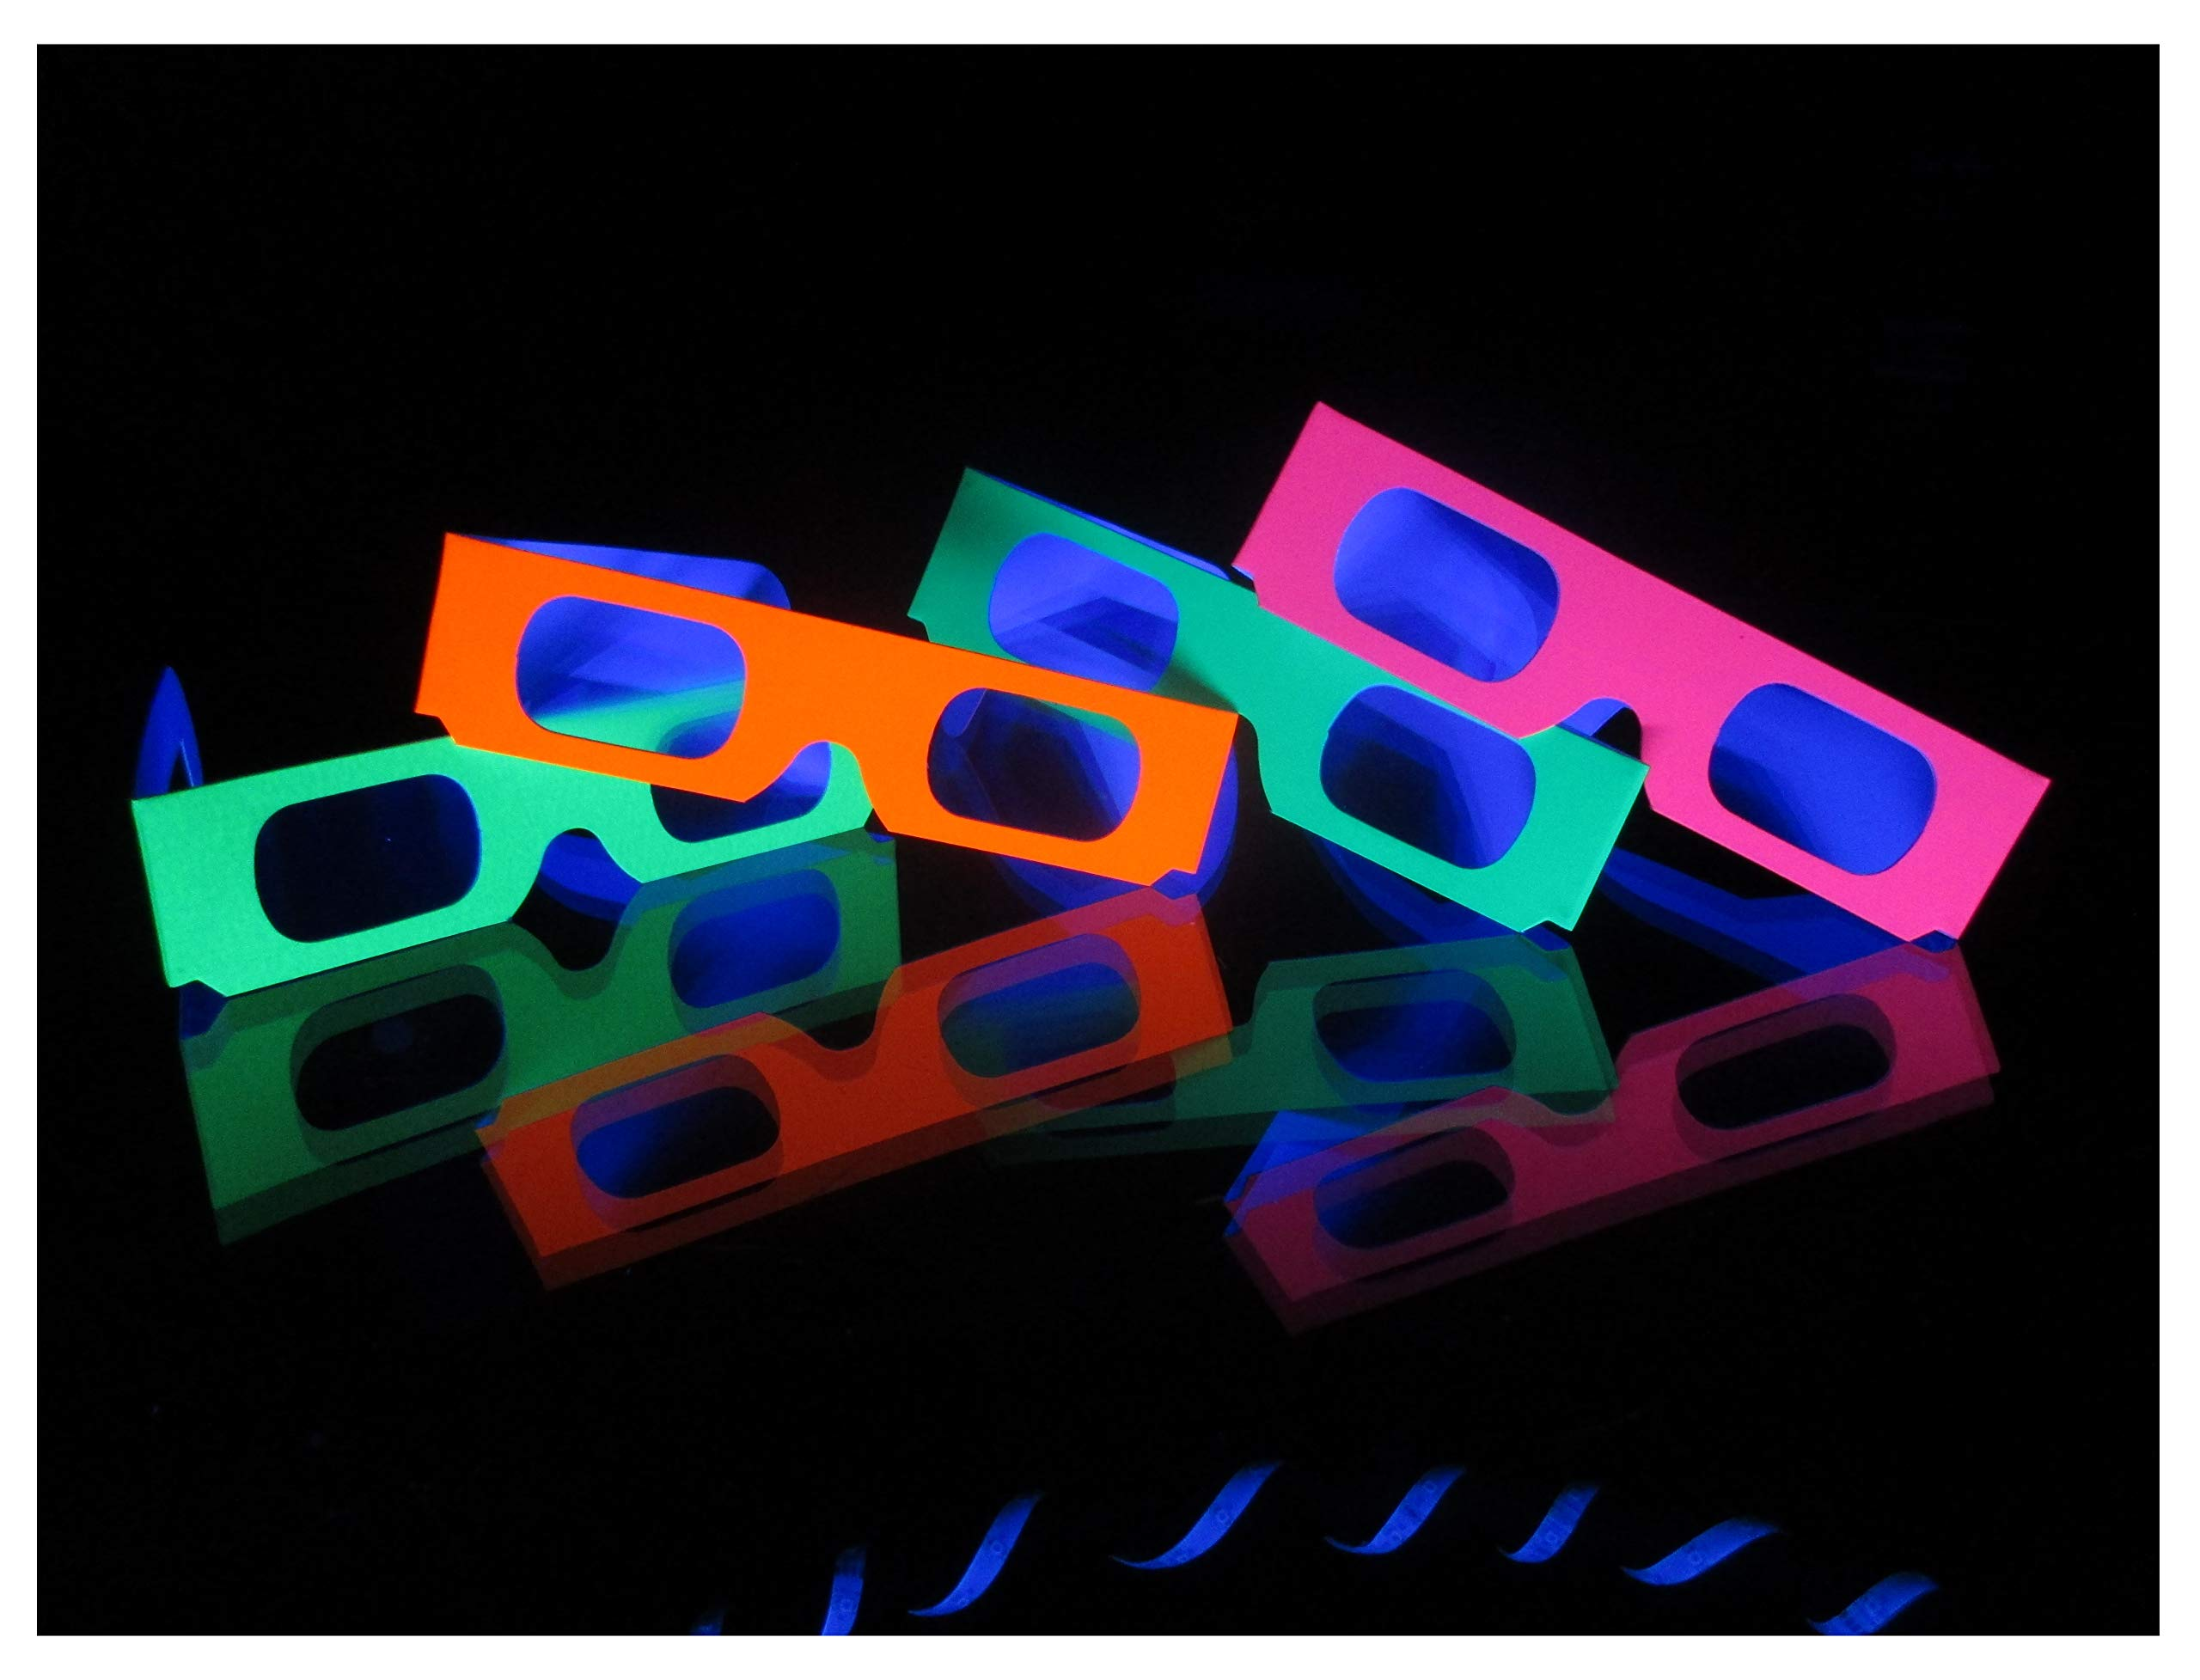 Rob's Super Happy Fun Store 50 Pair Fireworks Diffraction Glasses (Glow Under Blacklight!) Plus 1 Pair Hearts Diffraction Glasses